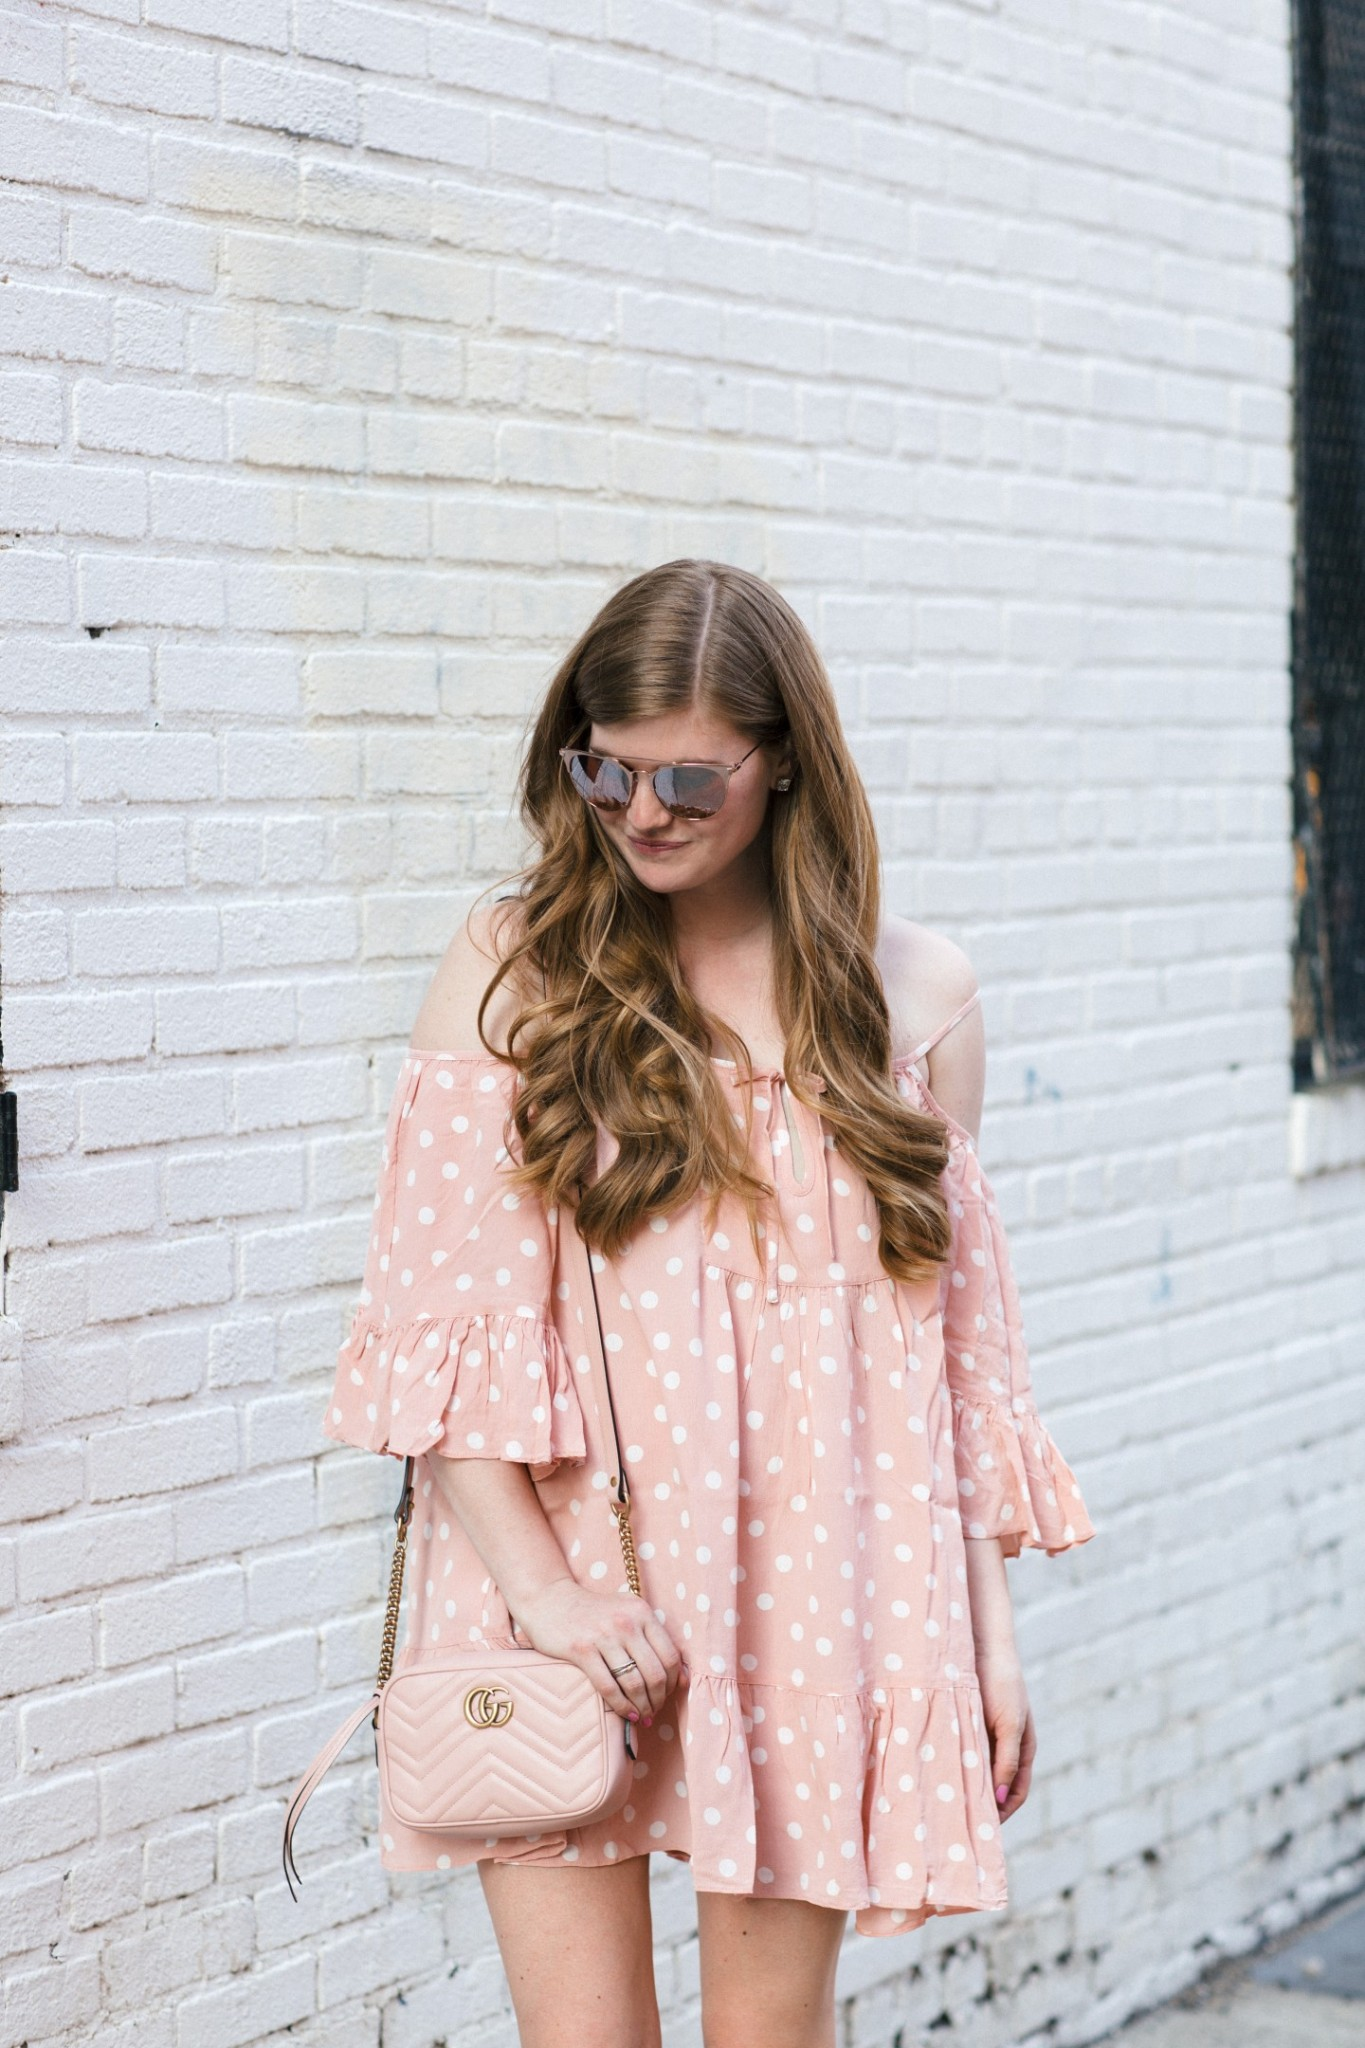 Lifestyle blogger Mollie Sheperdson styles a pink polka dot dress